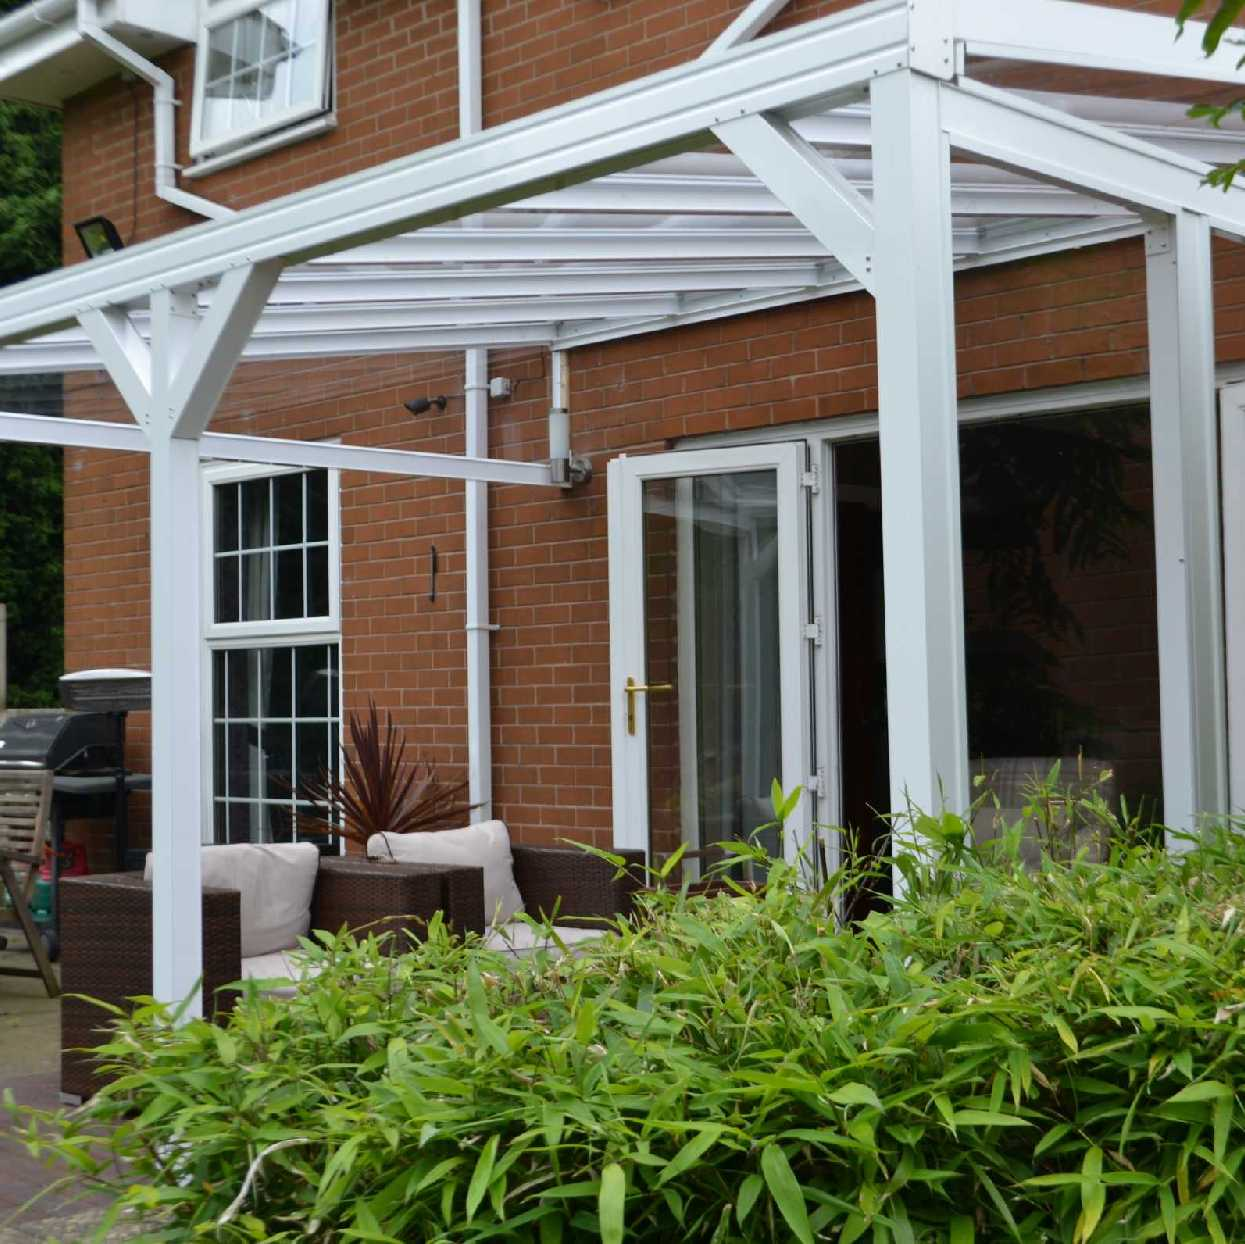 Omega Smart White Lean-To Canopy with 6mm Glass Clear Plate Polycarbonate Glazing - 4.2m (W) x 2.5m (P), (3) Supporting Posts from Omega Build